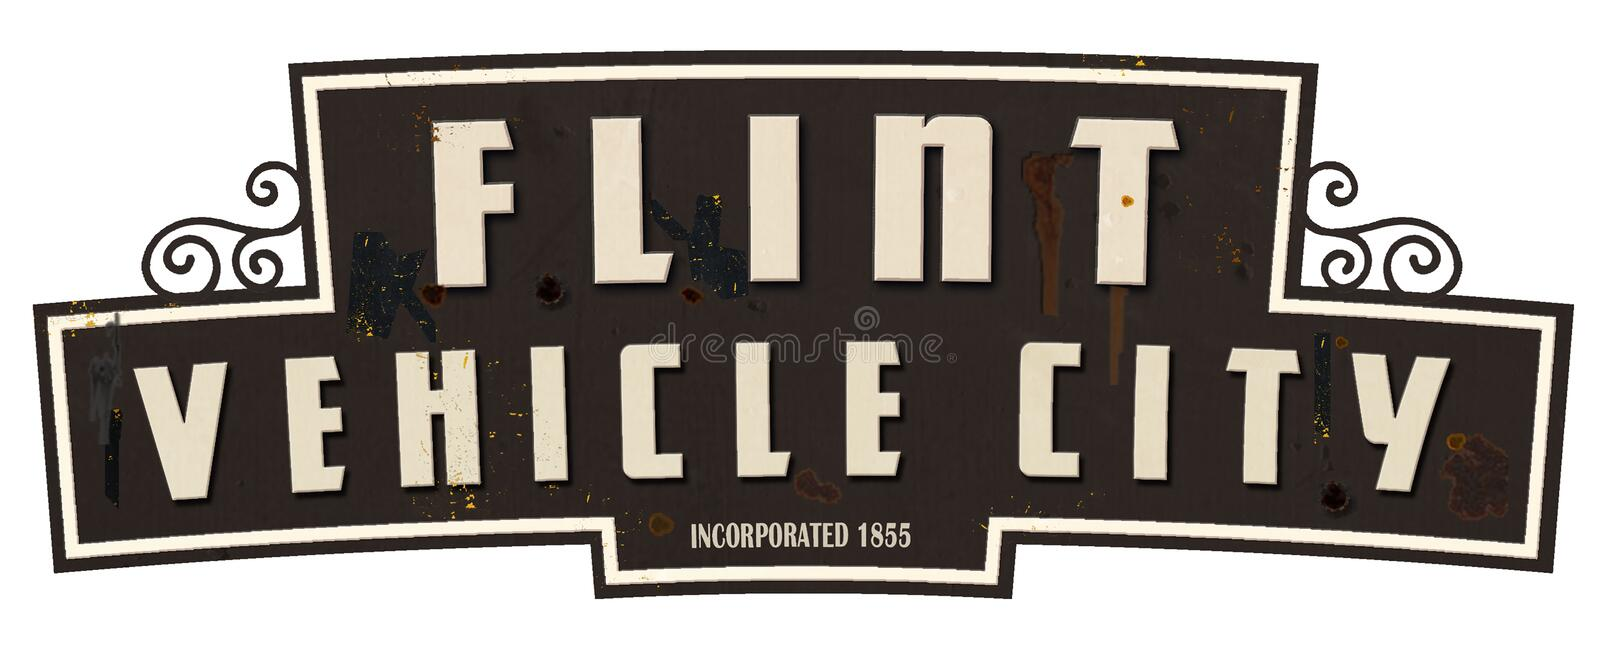 Flint Michigan Vehicle City Limits Sign Retro Vintage. Welcome to MI highway freeway old royalty free stock images